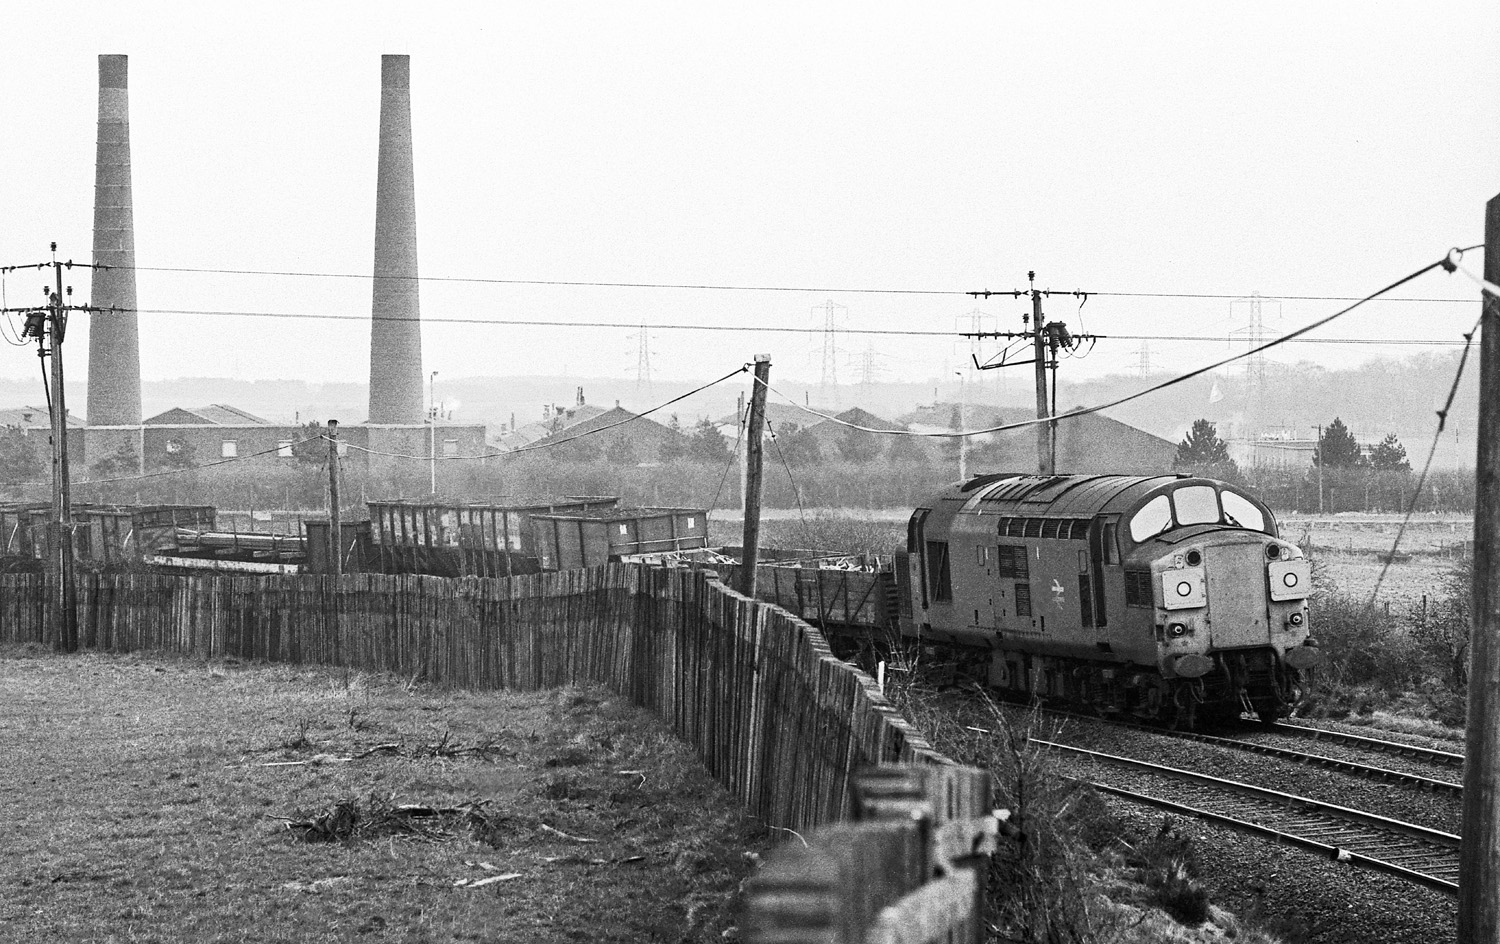 greencroft 11-4-80 37 062 mixed freight